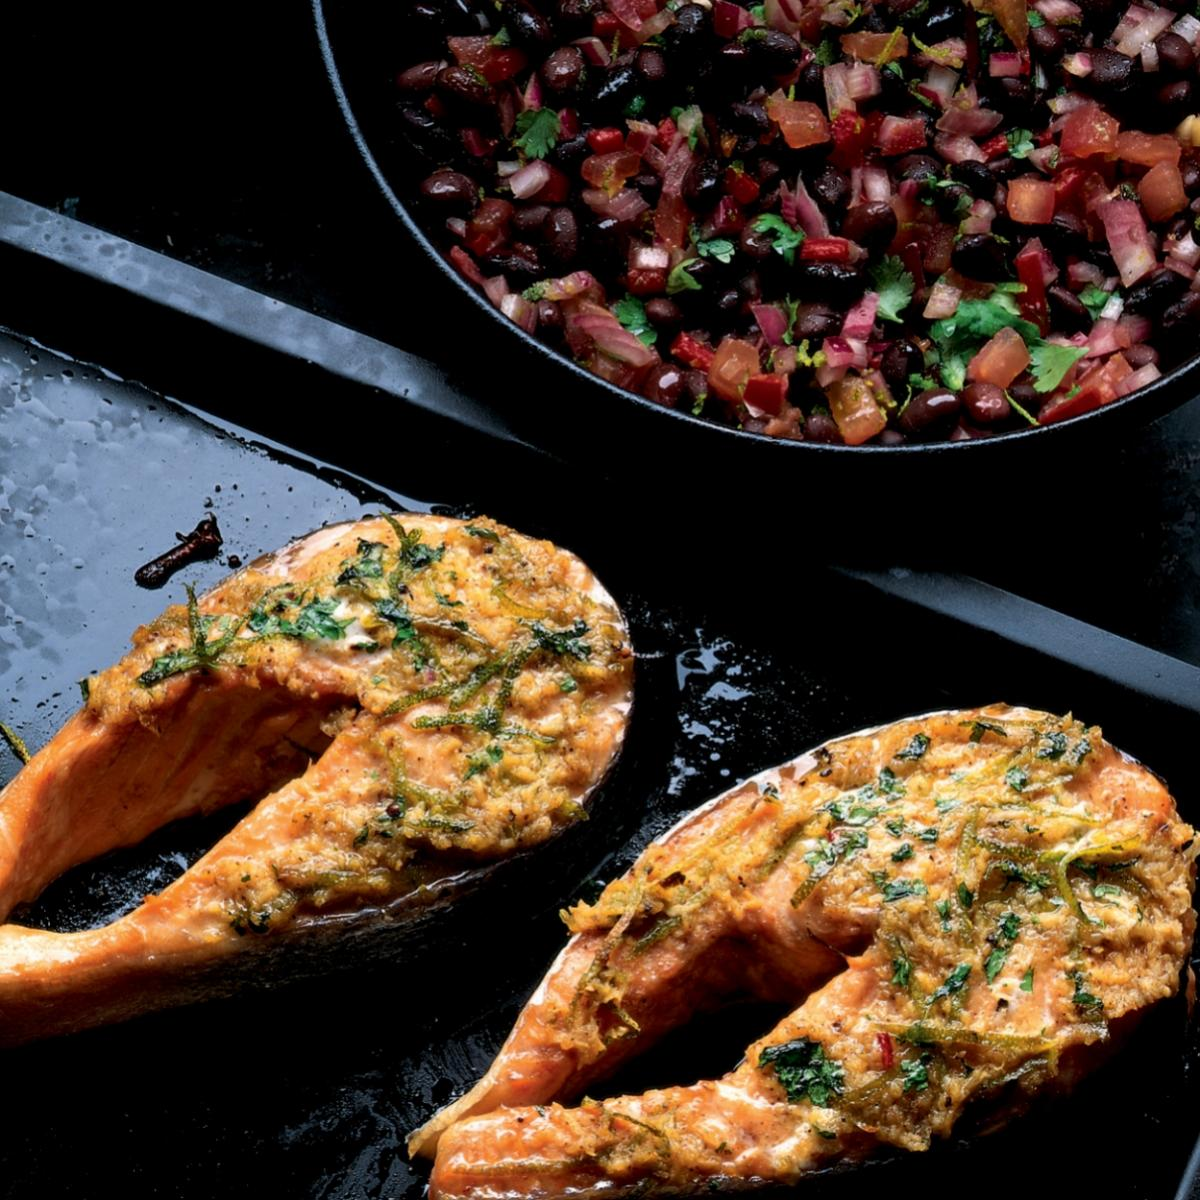 Winter seared spiced salmon steaks with black bean salsa